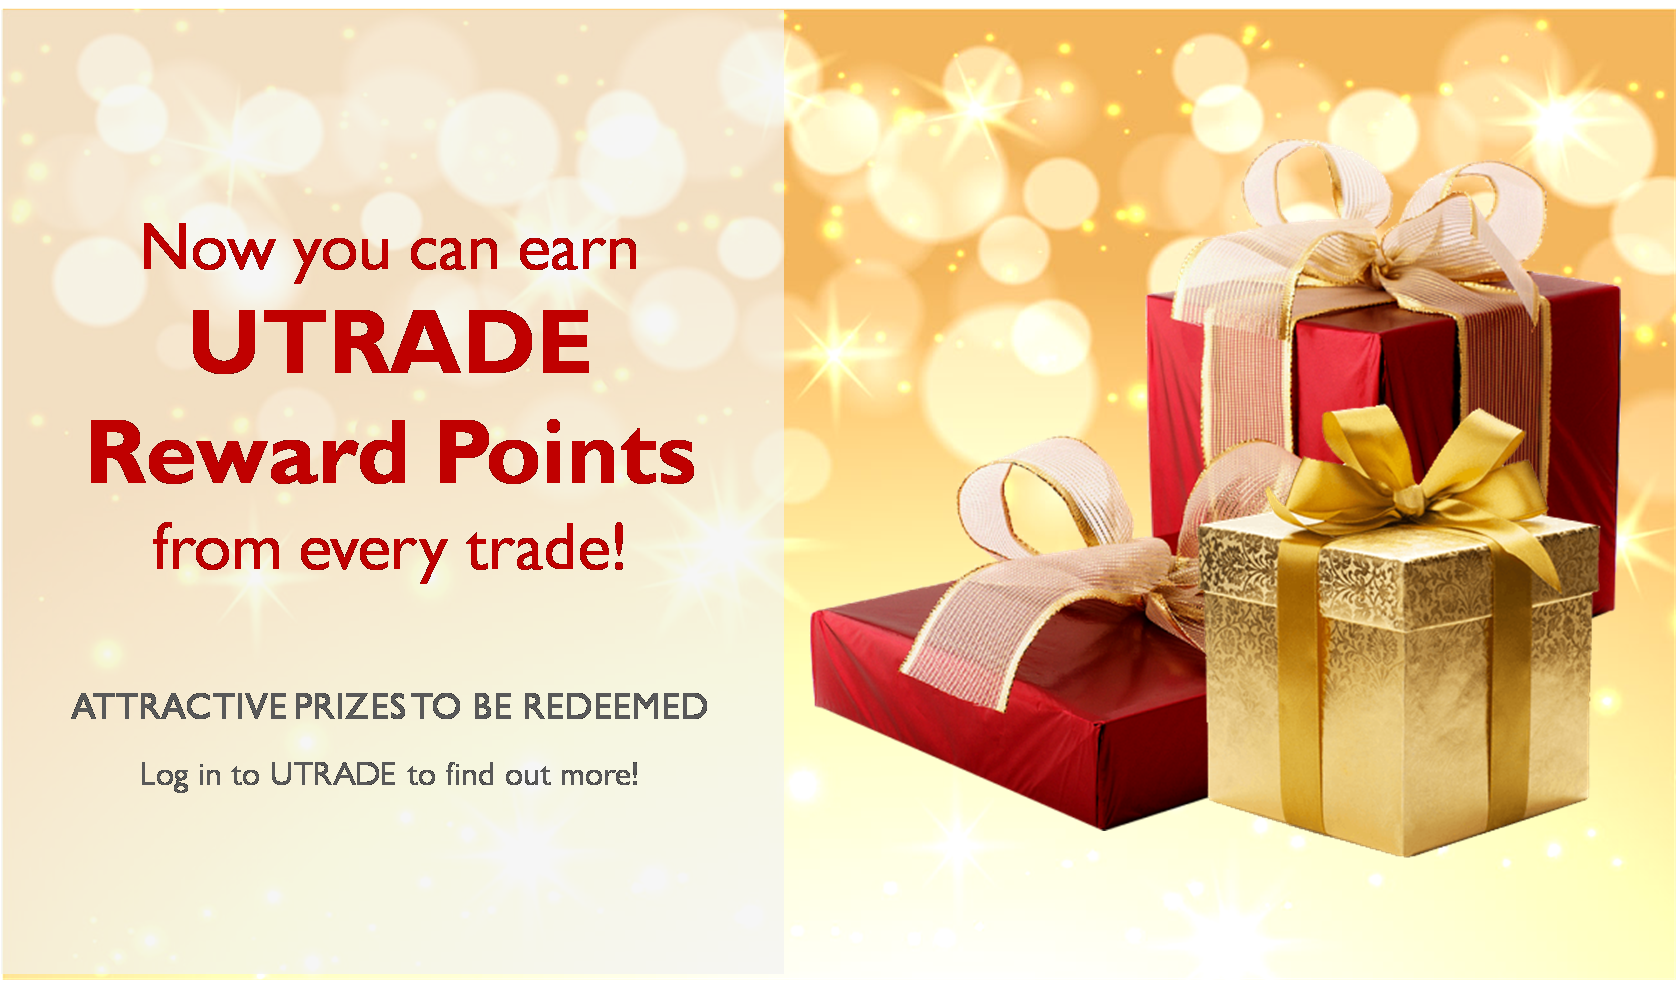 UTRADE Reward